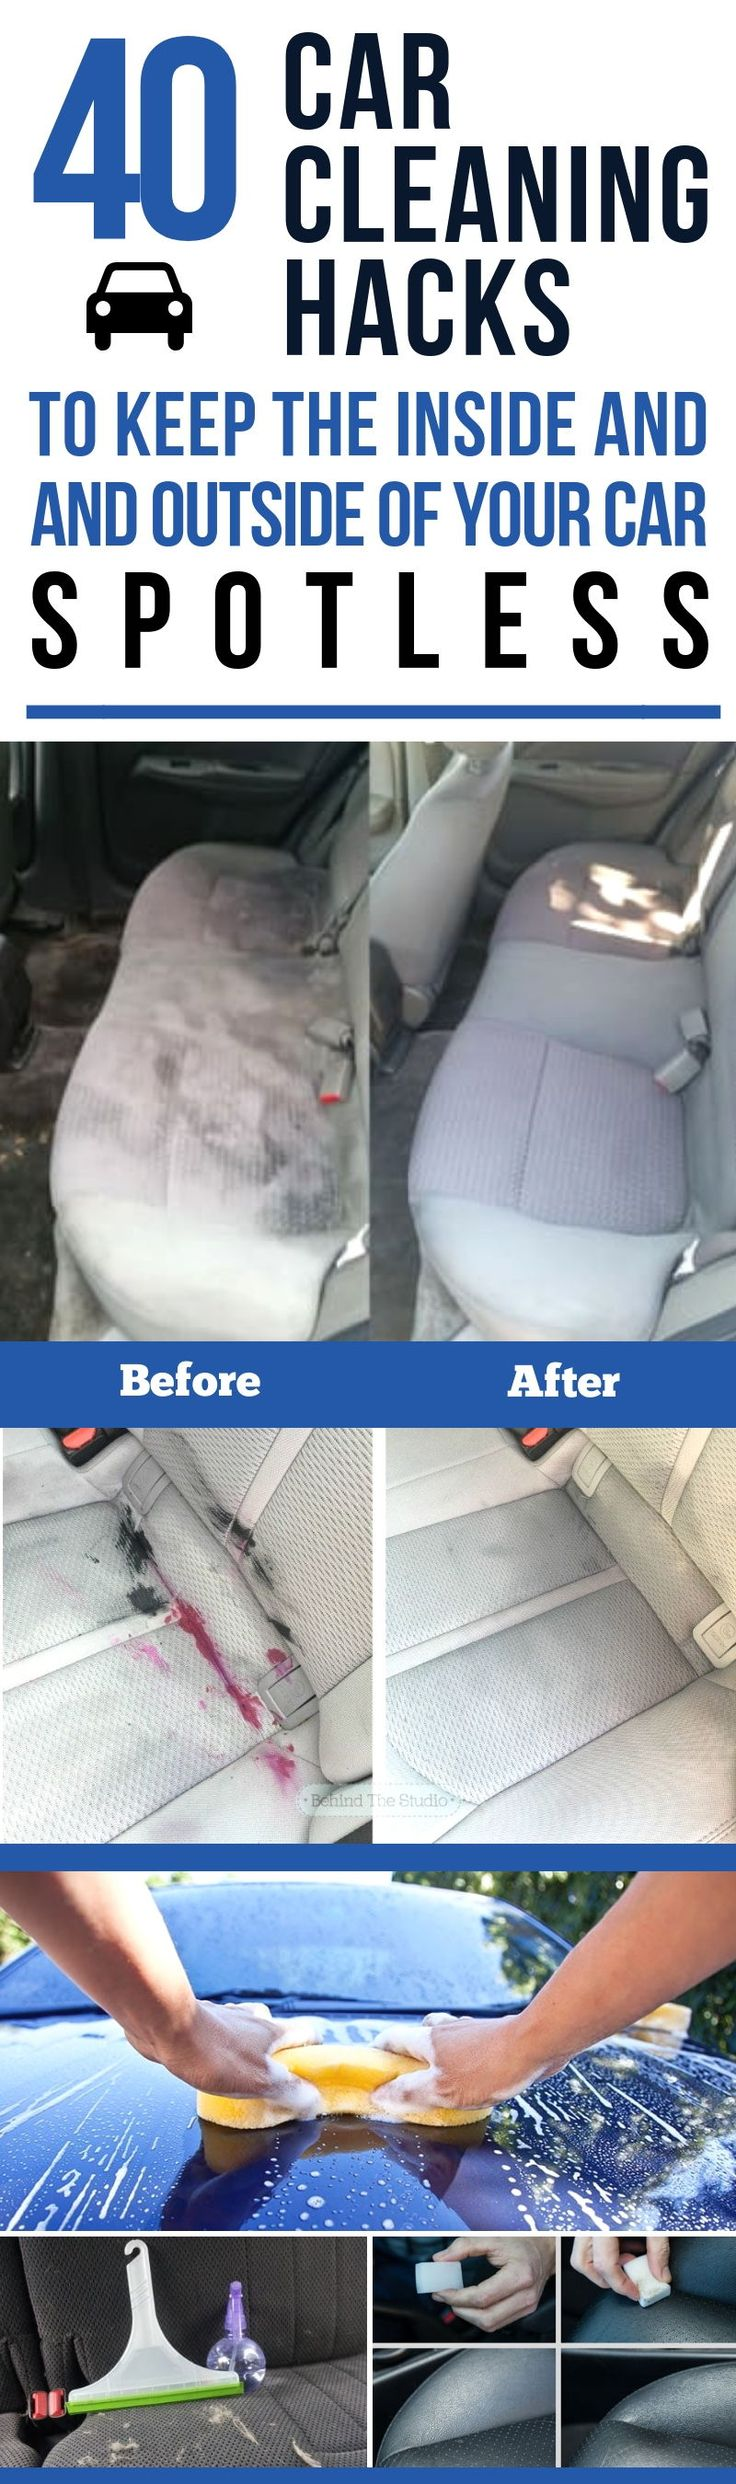 35+ Little-Known Car Cleaning Hacks To Keep The Inside And Outside Of Your Car Spotless